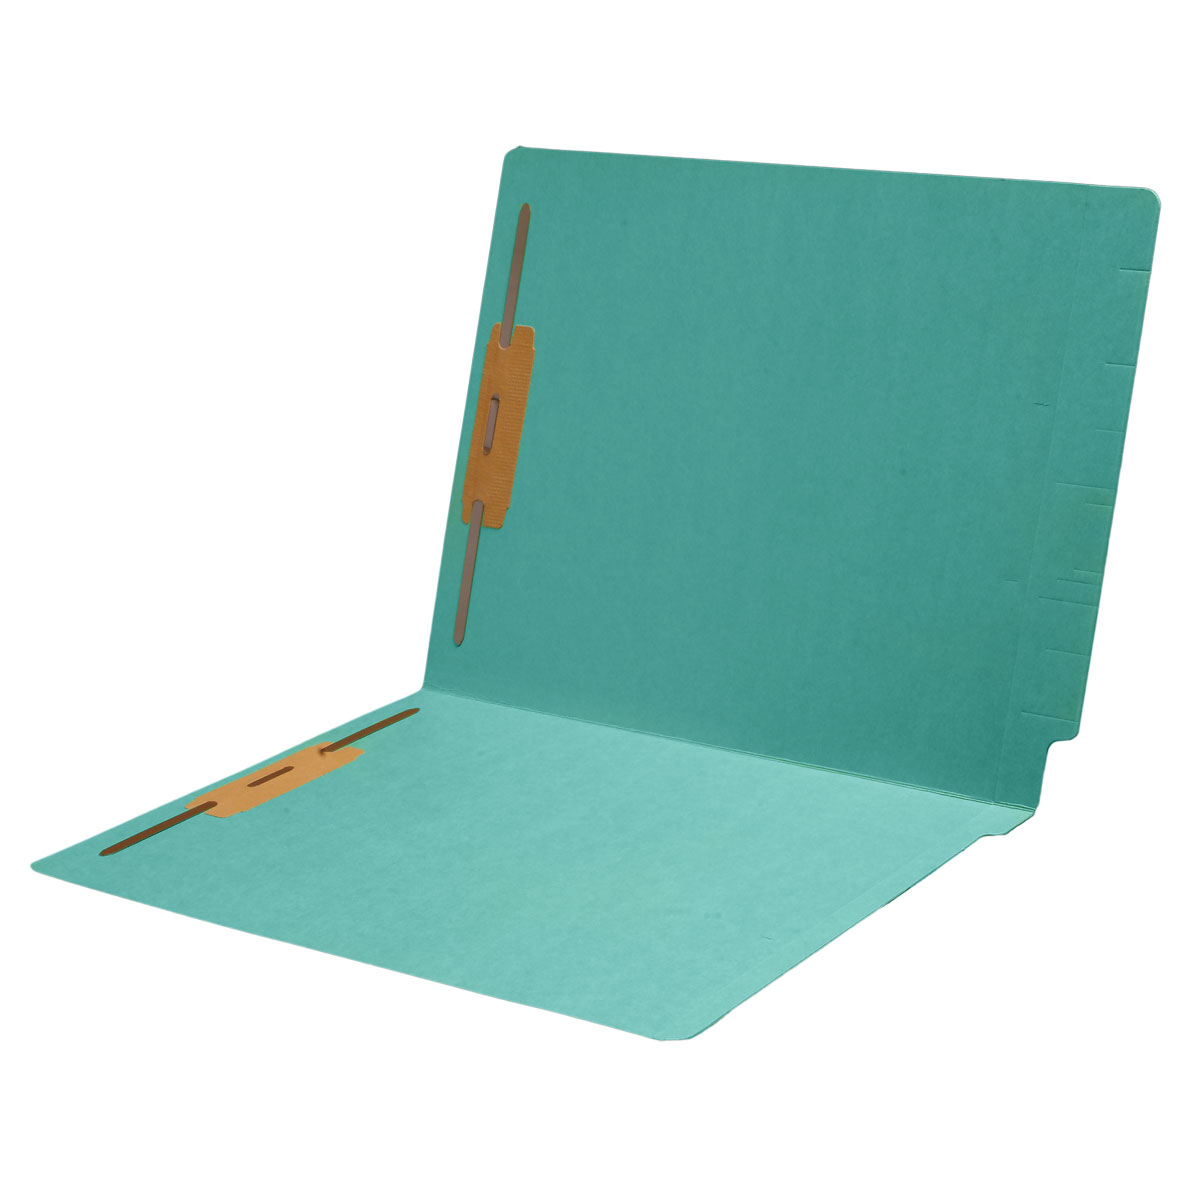 S-1502-STBLU - 11 pt Color Folders, Full Cut 2-Ply End Tab, Letter Size, Fasteners Pos #1 & #3, Sterling Blue (Box of 50)